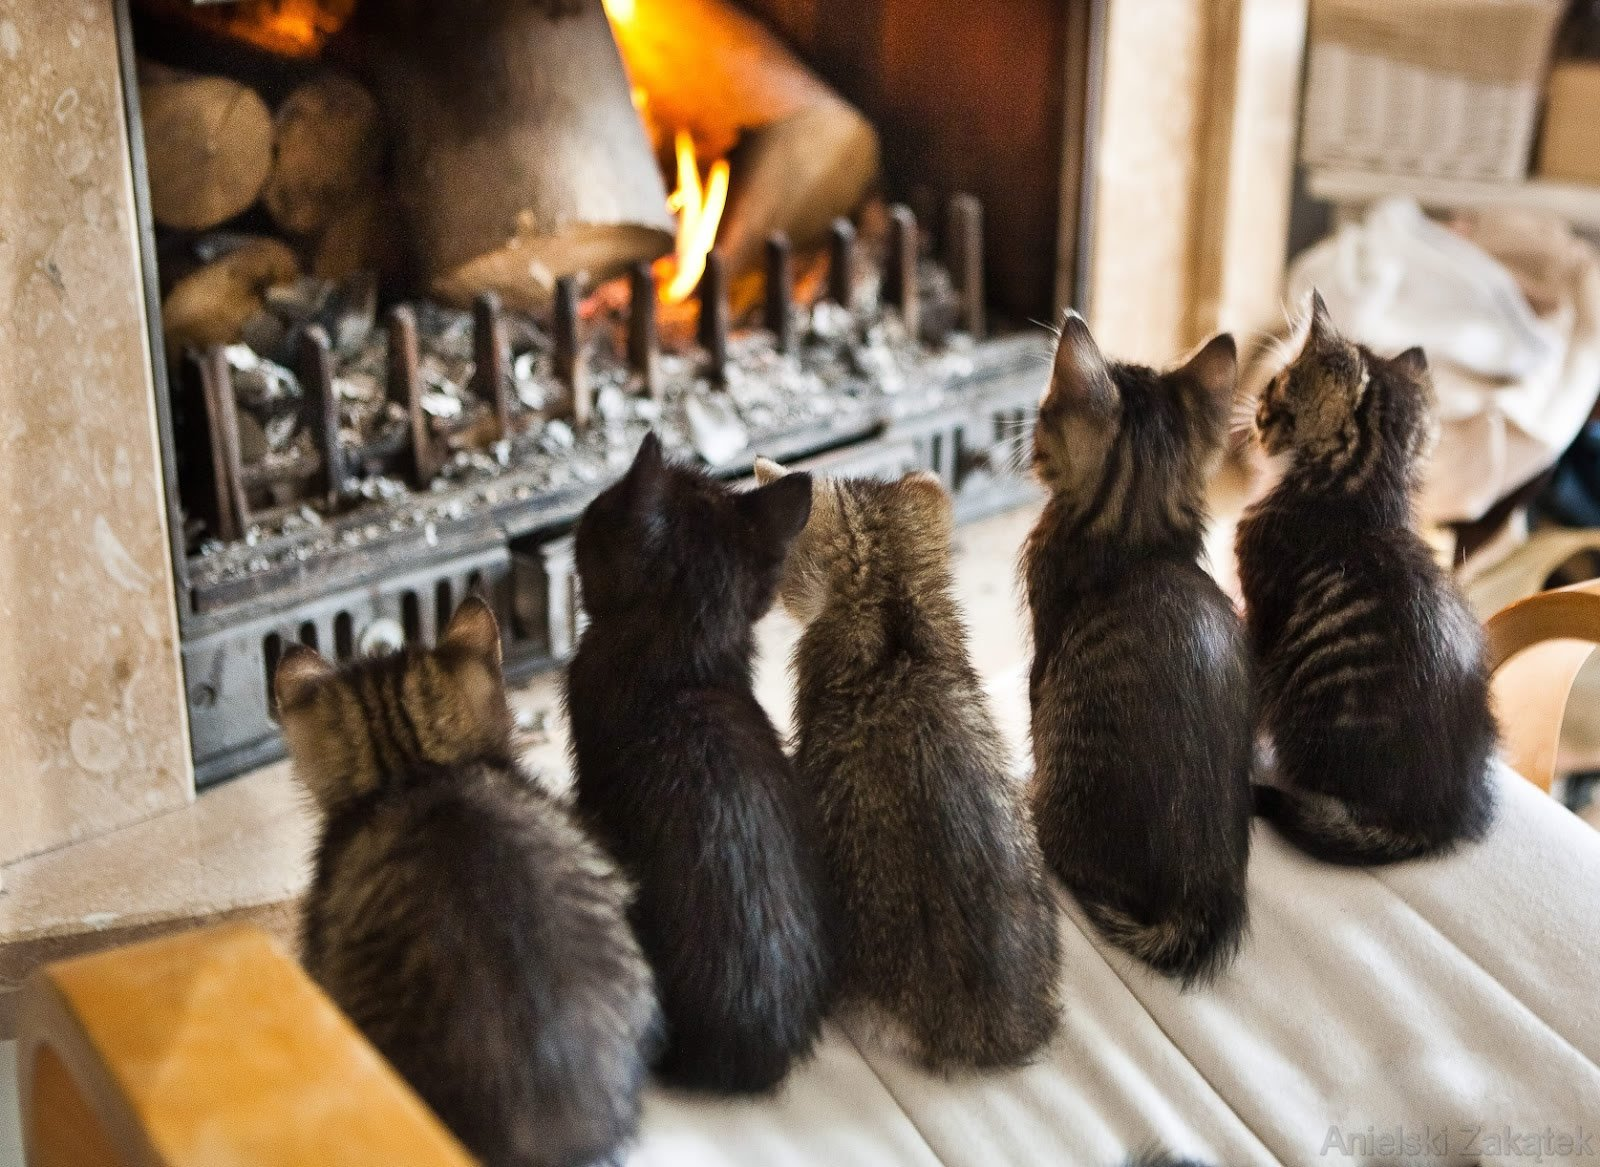 Cats at fireplace